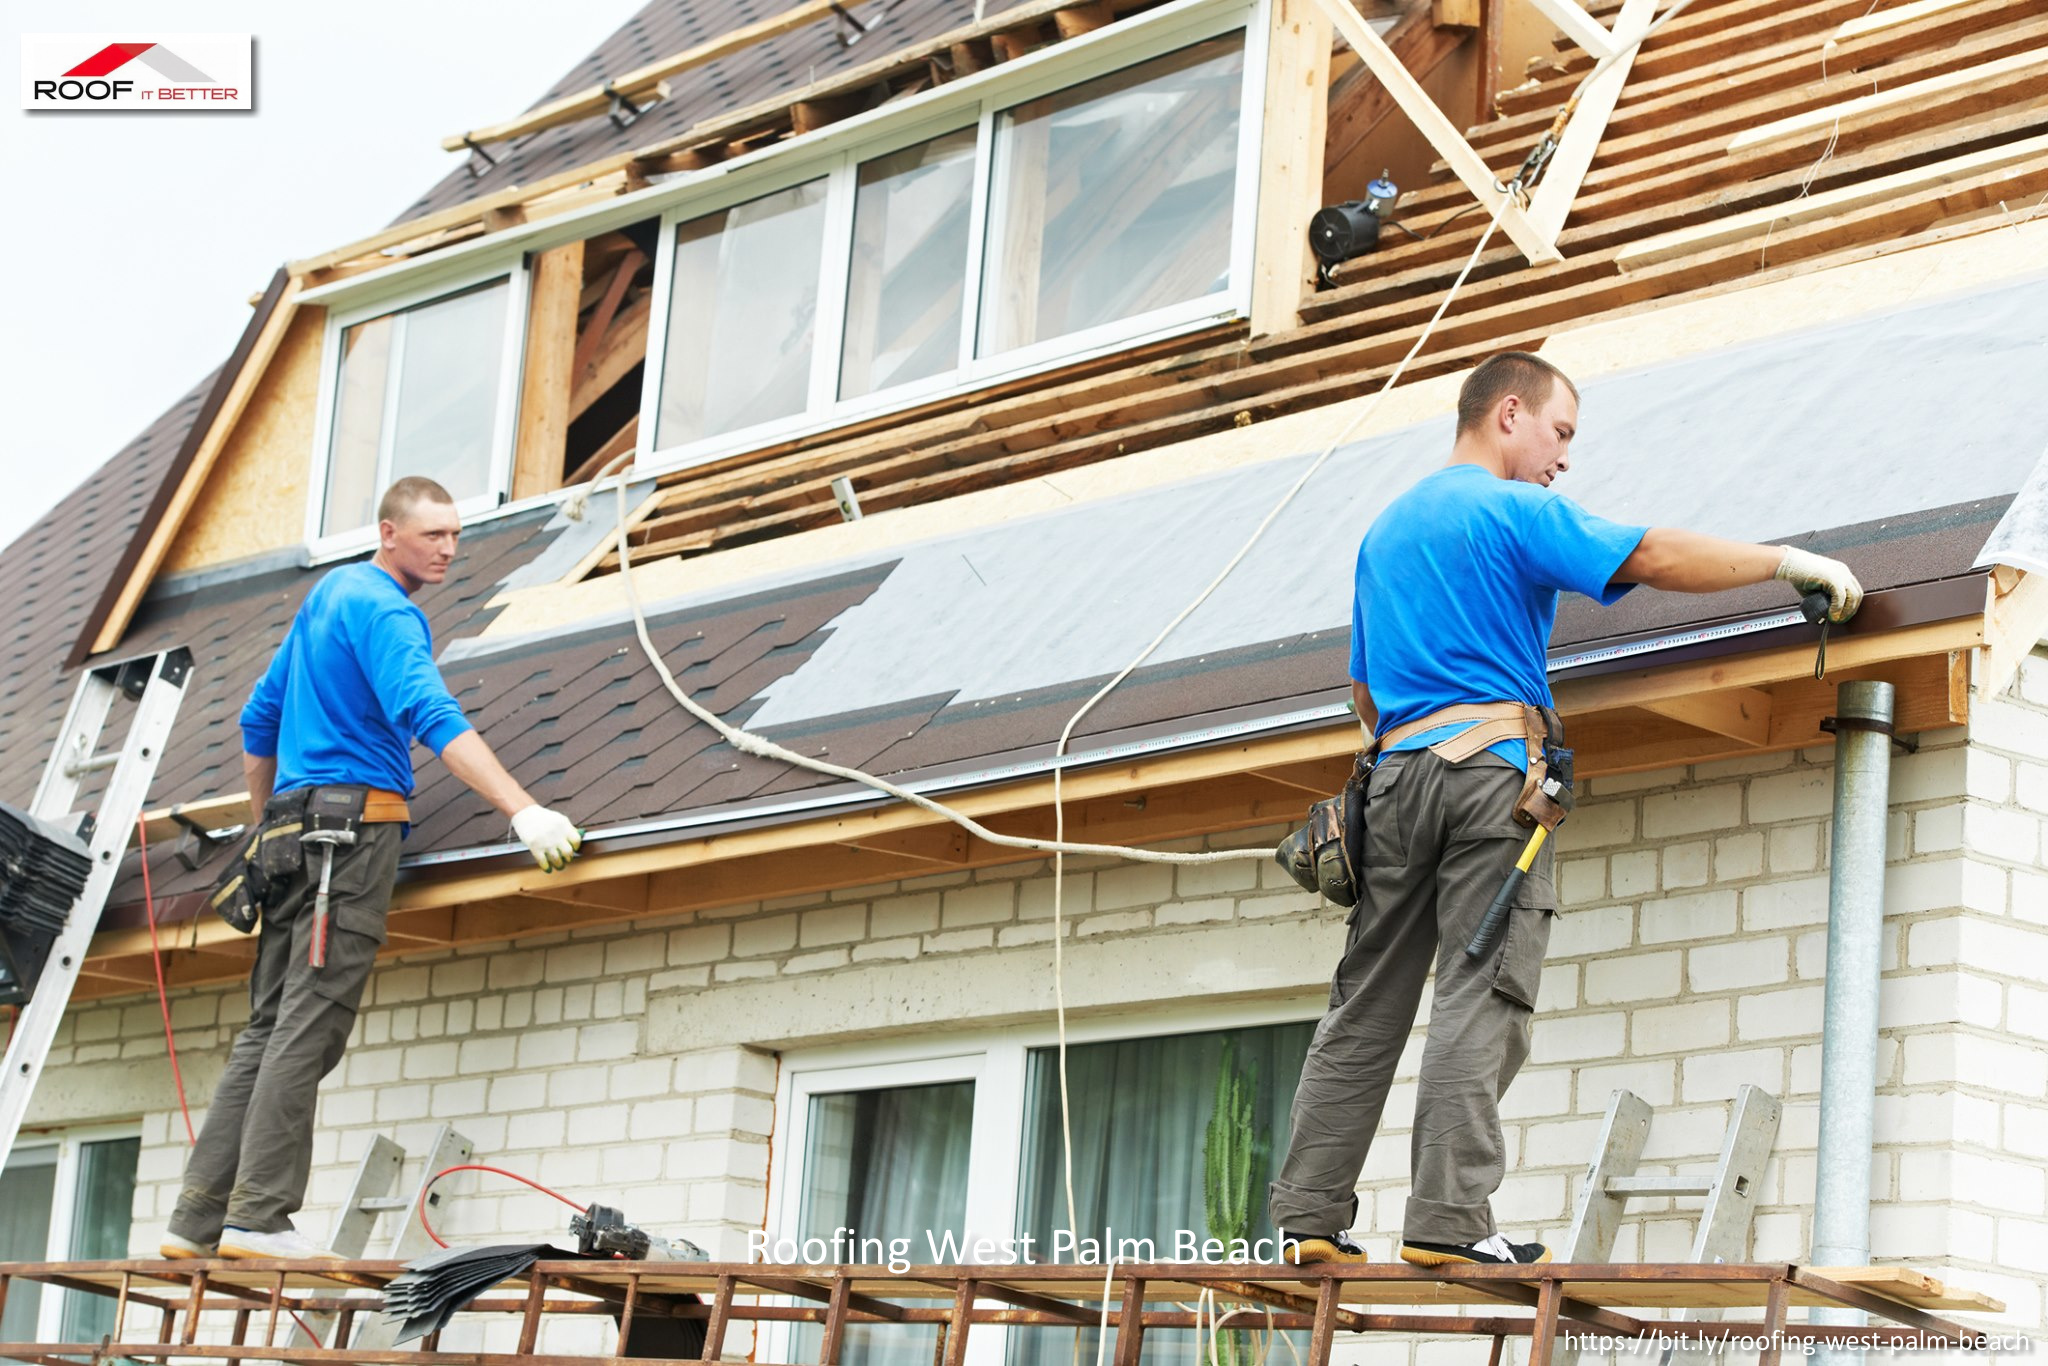 Roof It Better Offers Top Roofing Services For West Palm Beach Residents